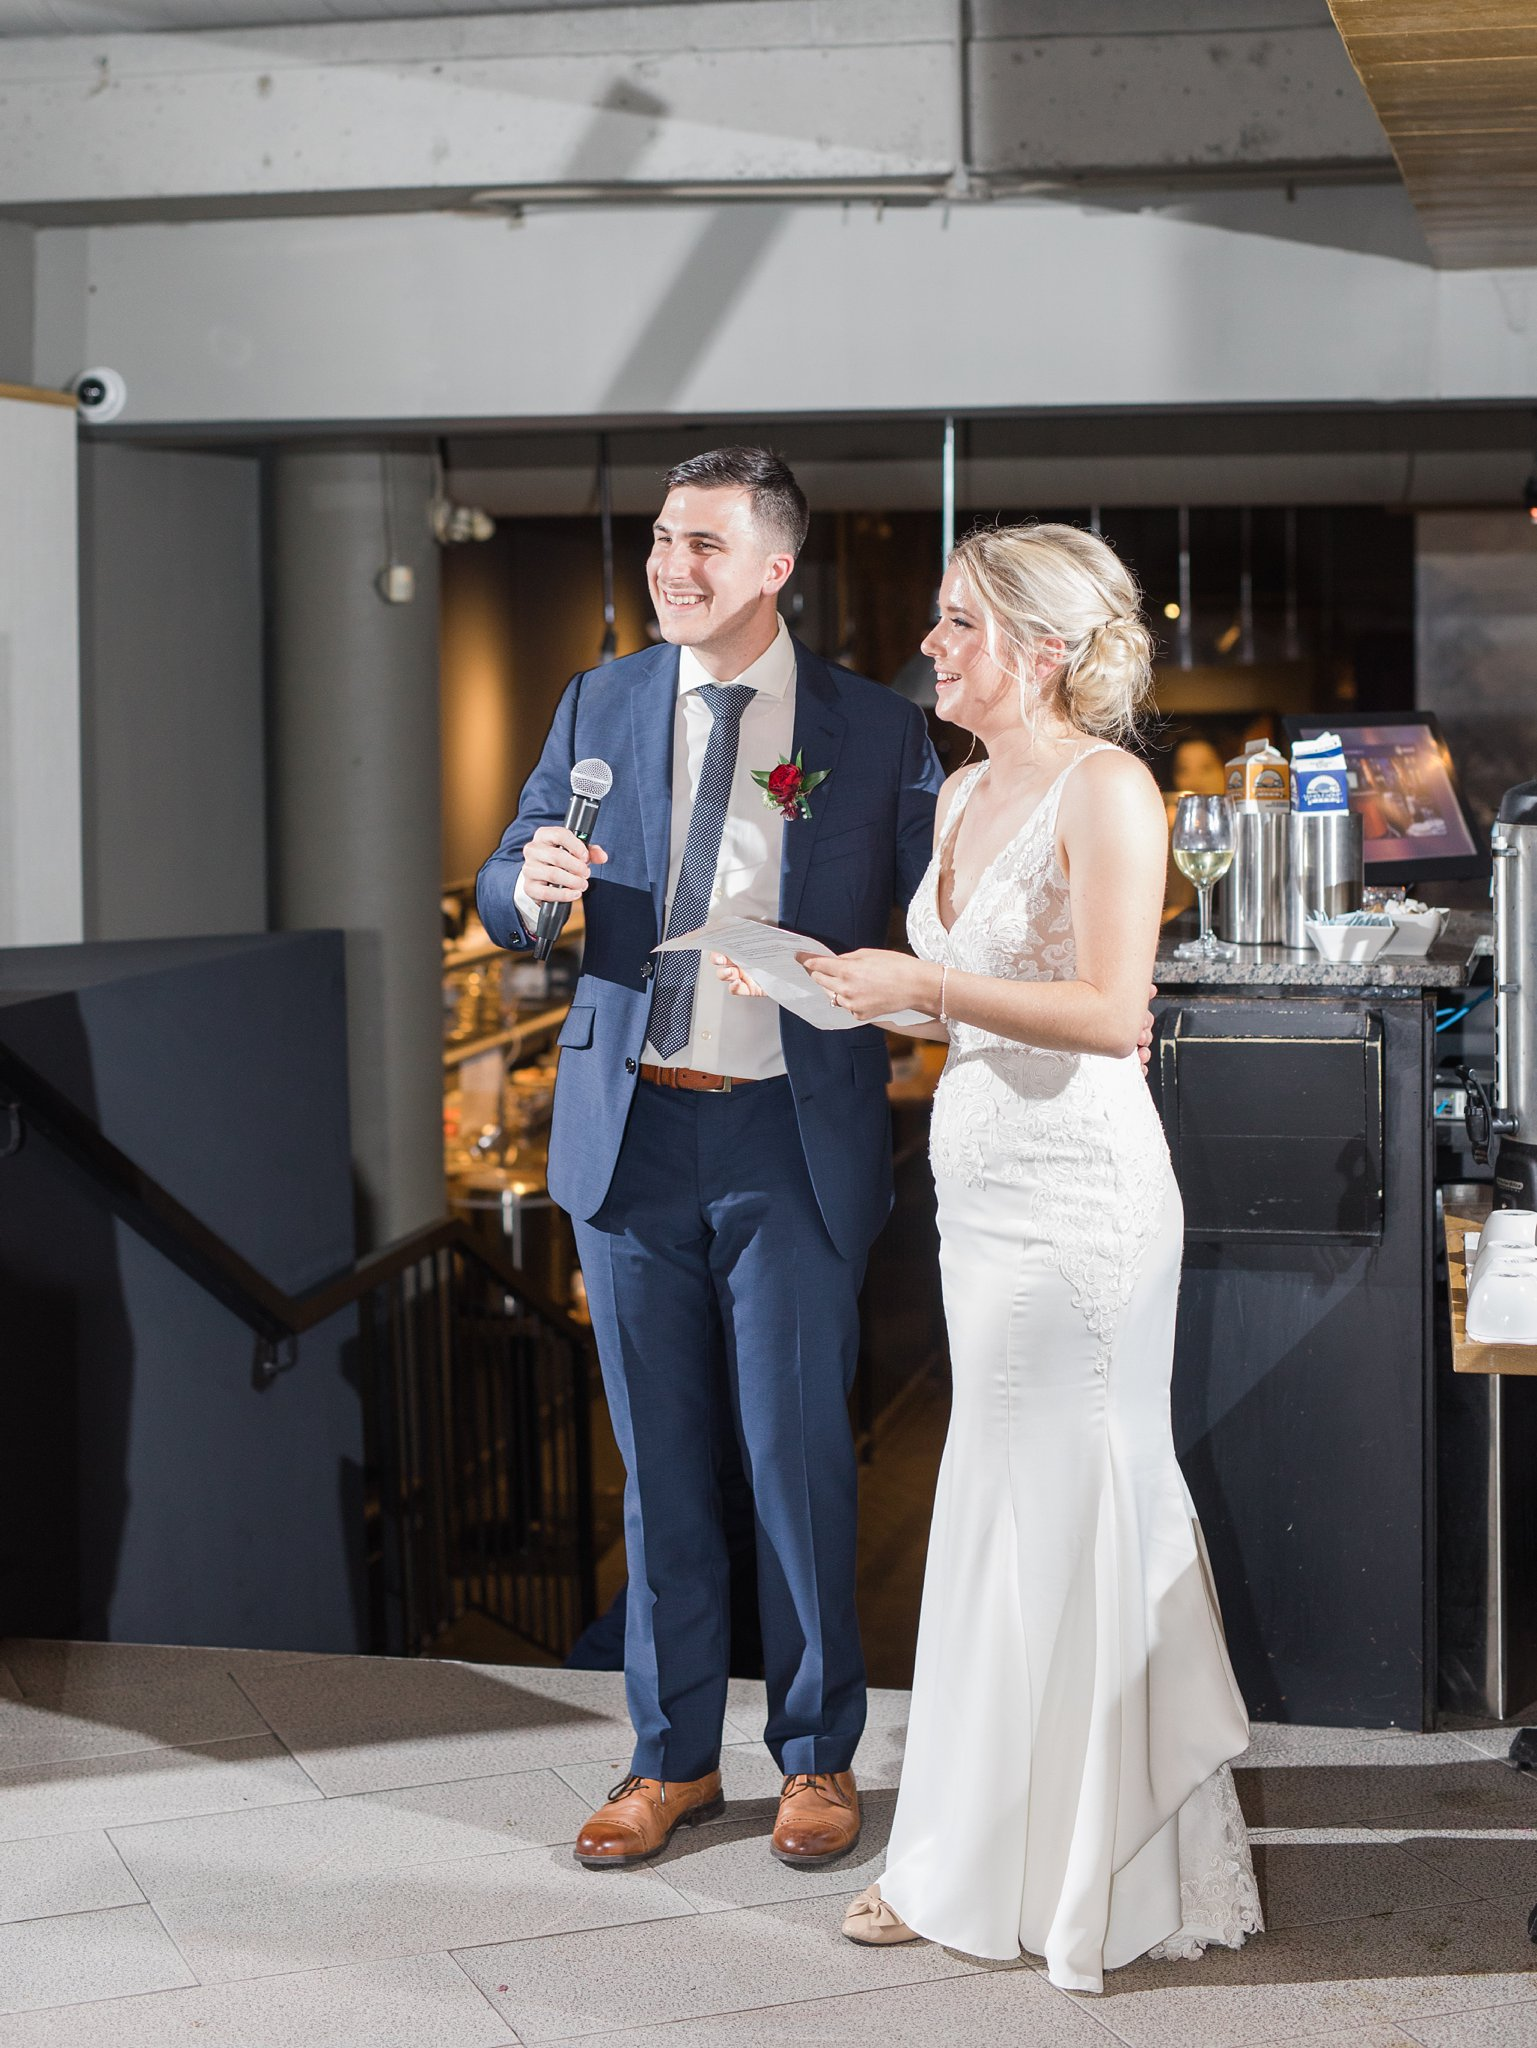 Bride and groom speech Ottawa restaurant wedding at Sidedoor Restaurant